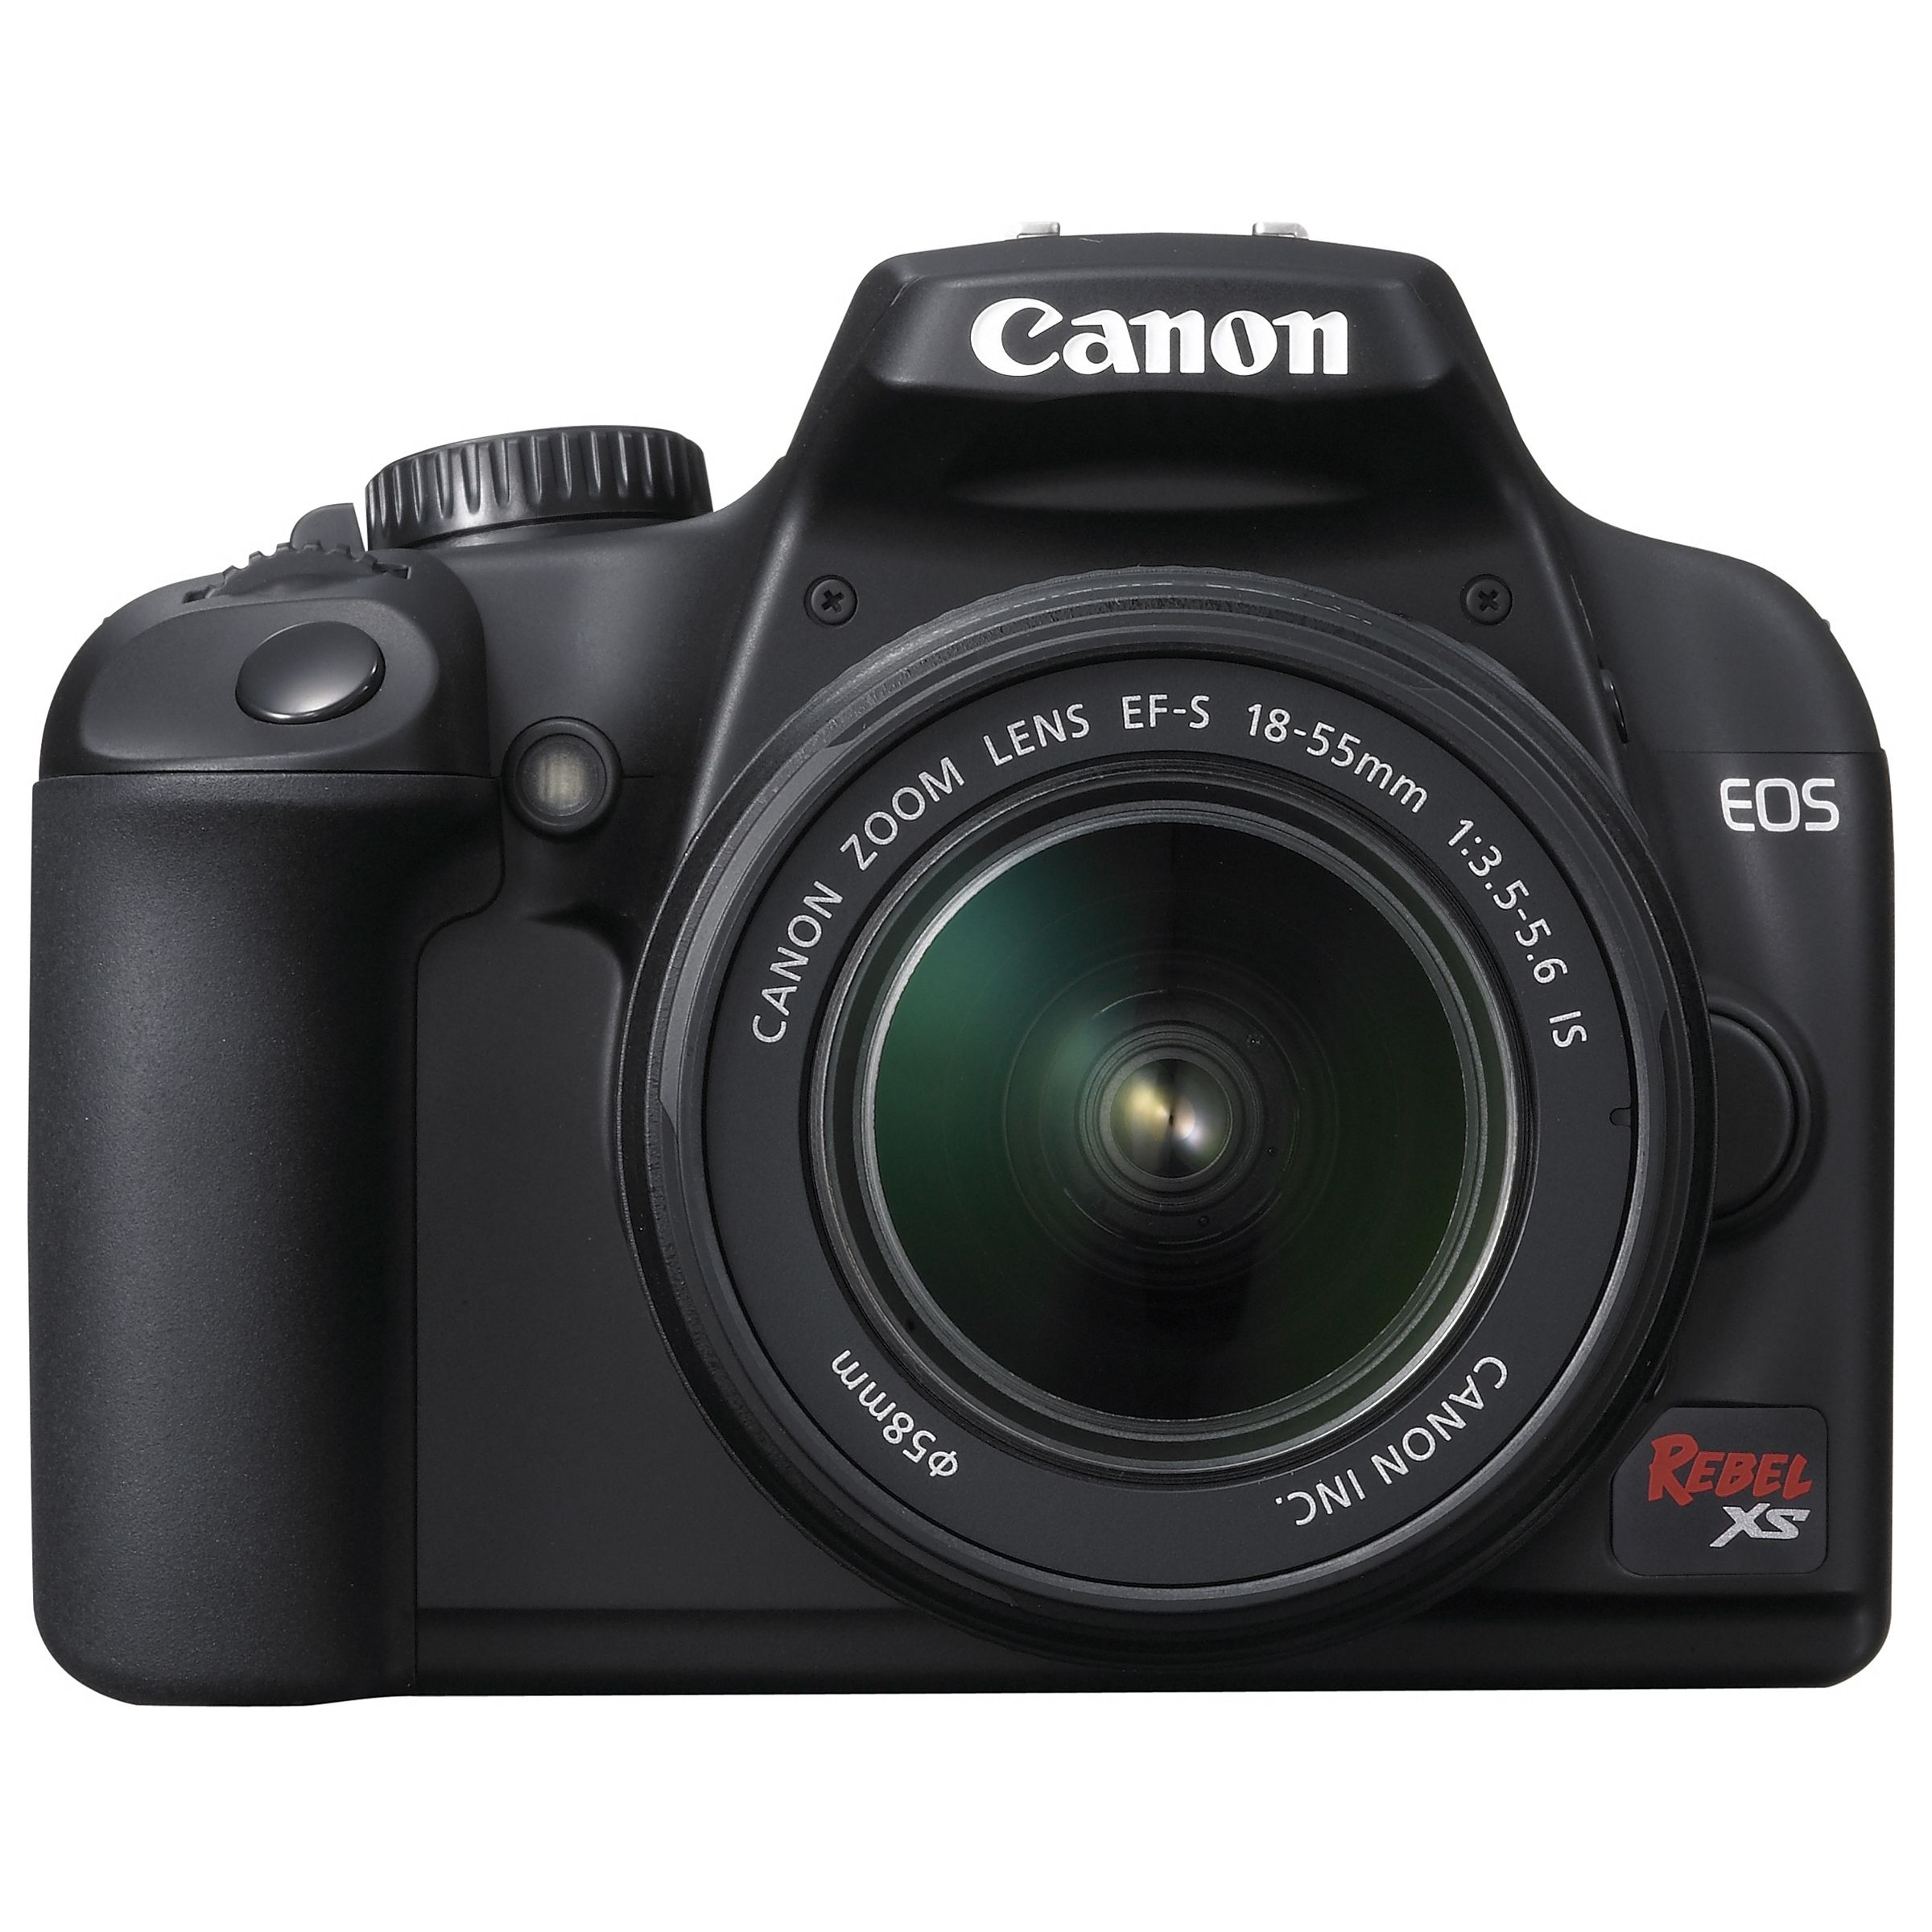 Canon EOS Rebel XS – Digital camera – SLR - 10.1MP